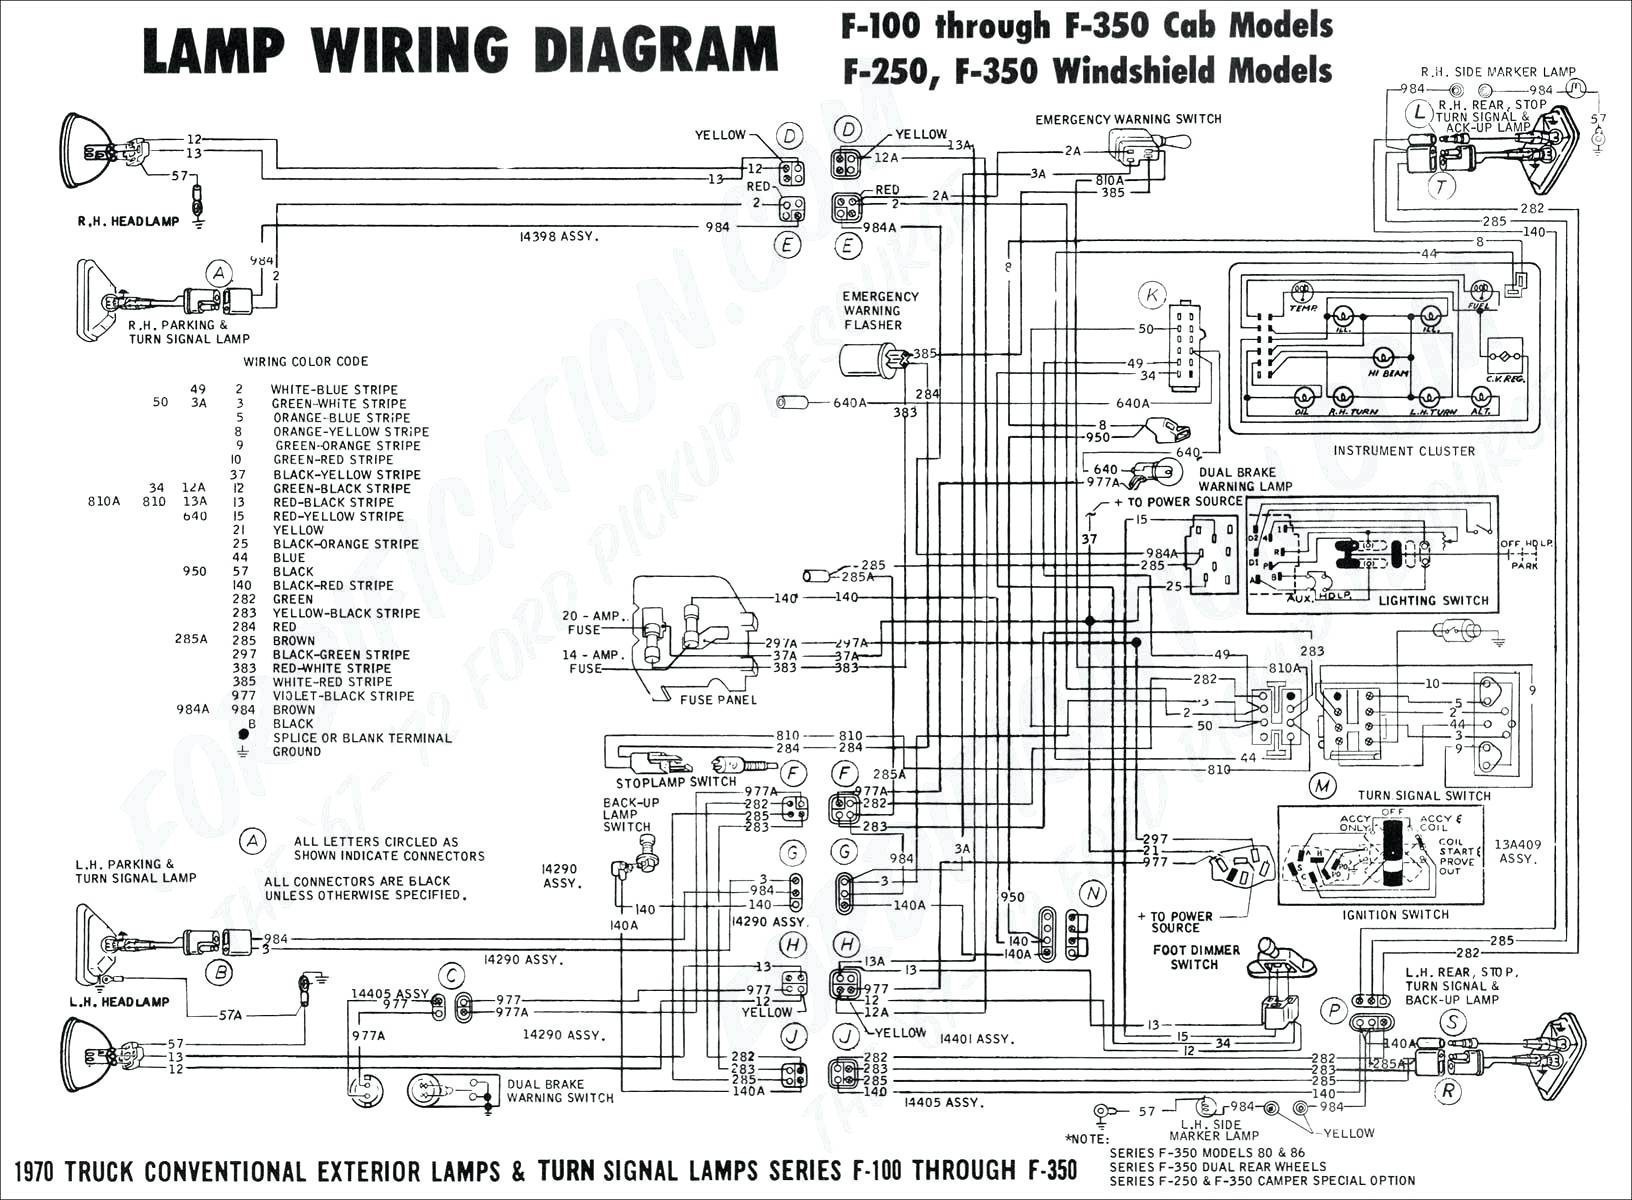 2001 Silverado Wiring Diagram 2001 Silverado Tail Light Wiring Diagram